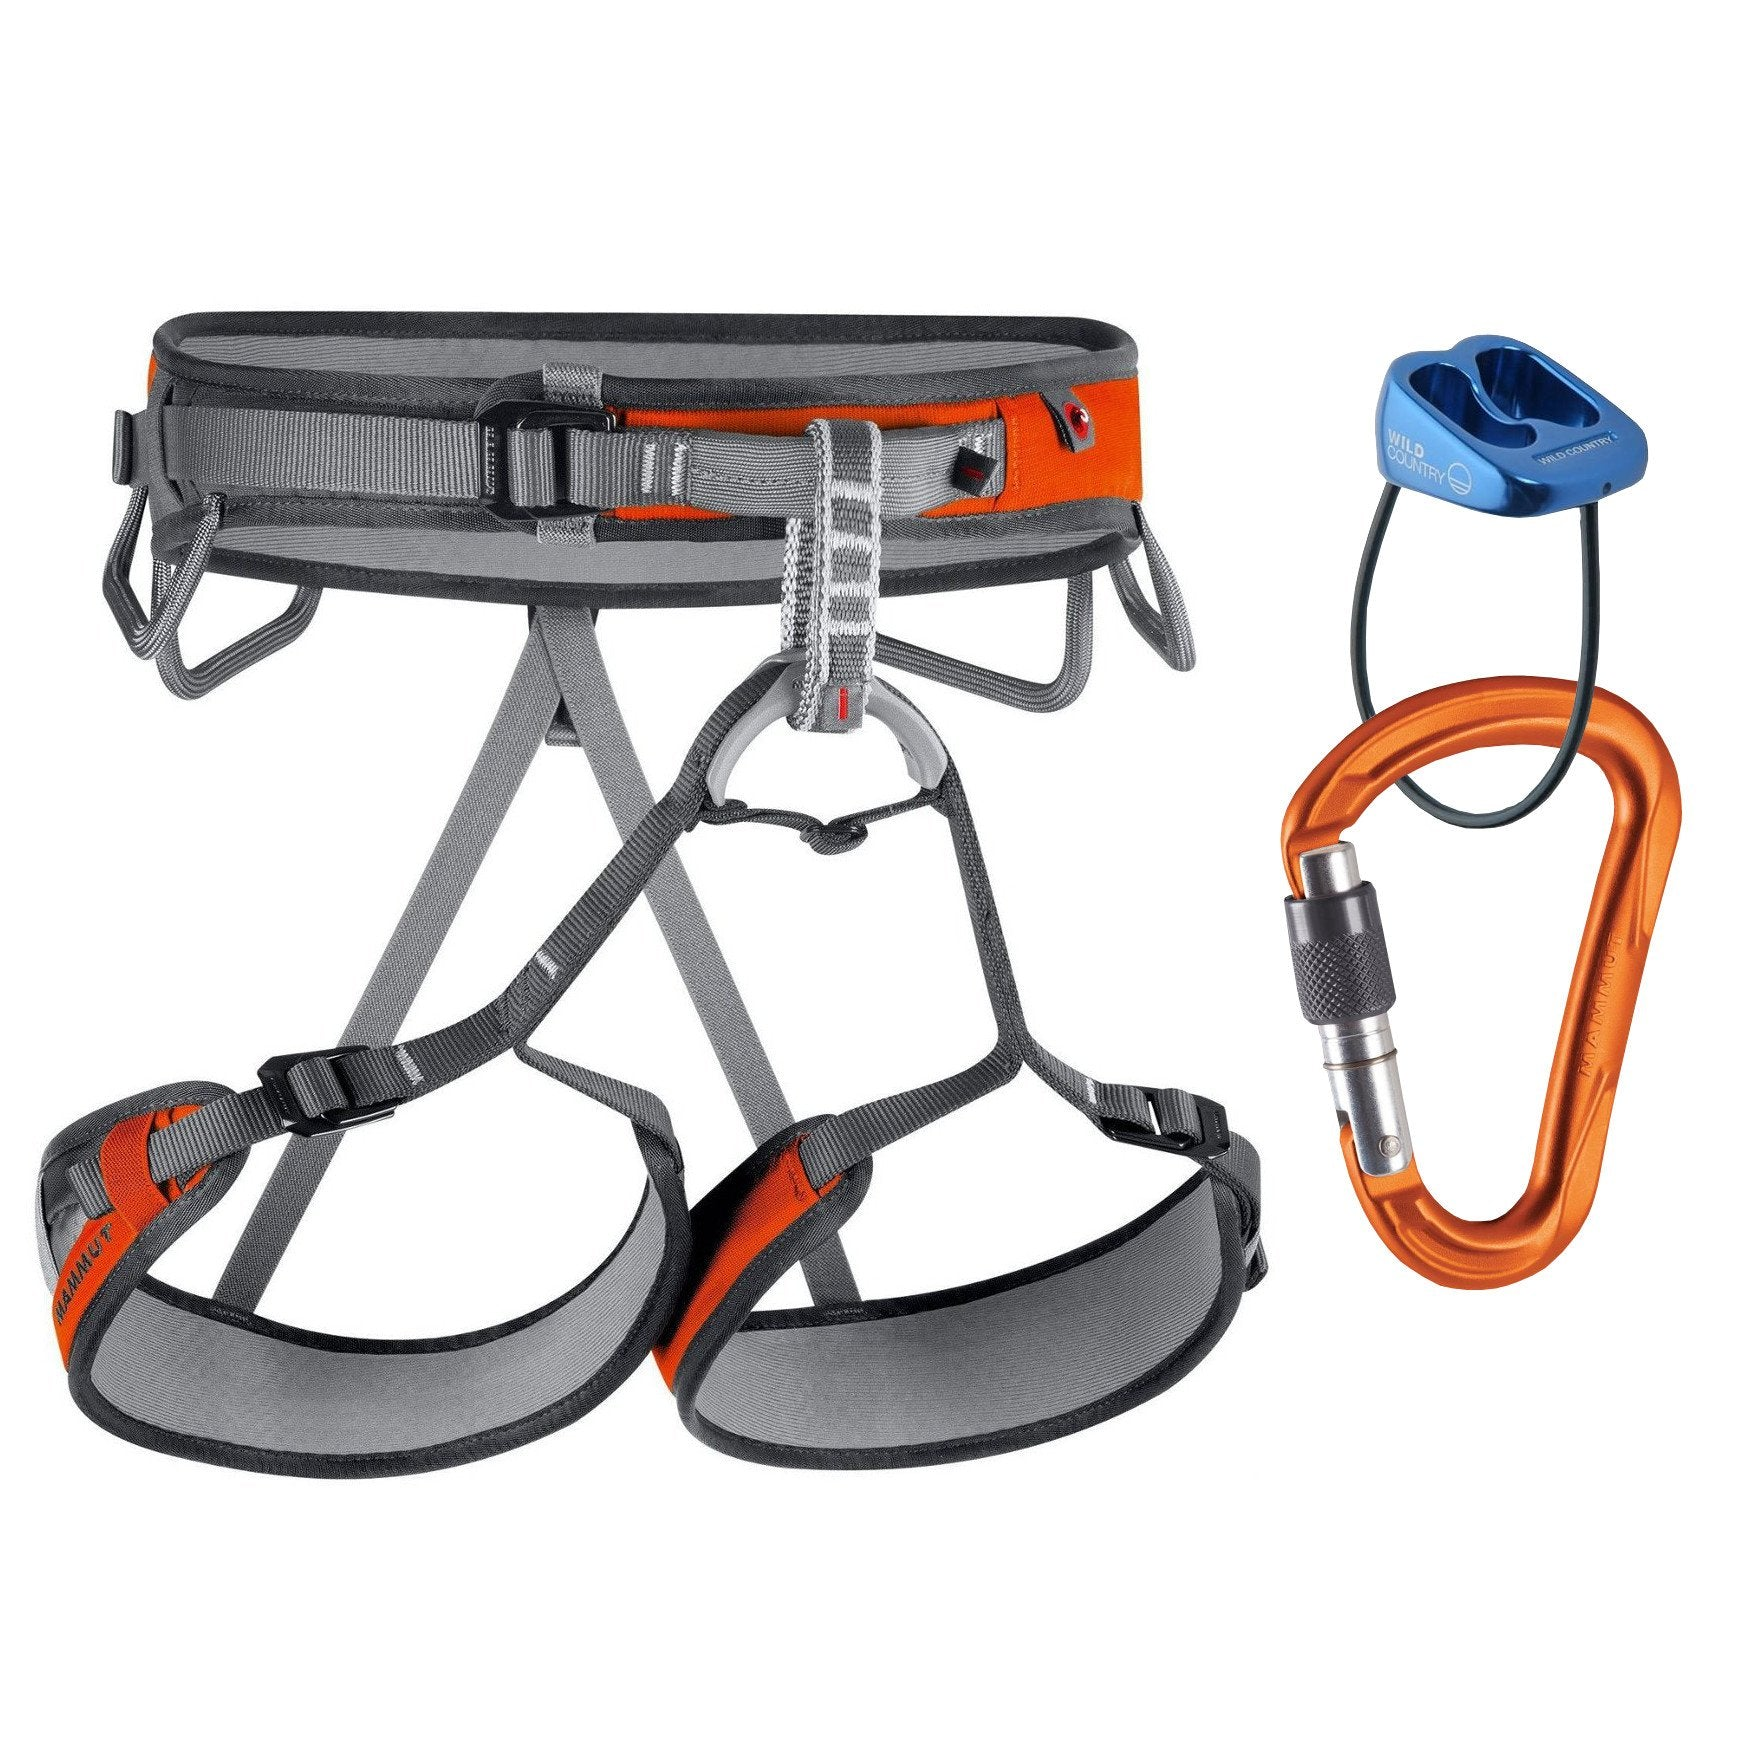 Mammut Ophir 3 Slide Harness Package in Grey,Orange & Blue